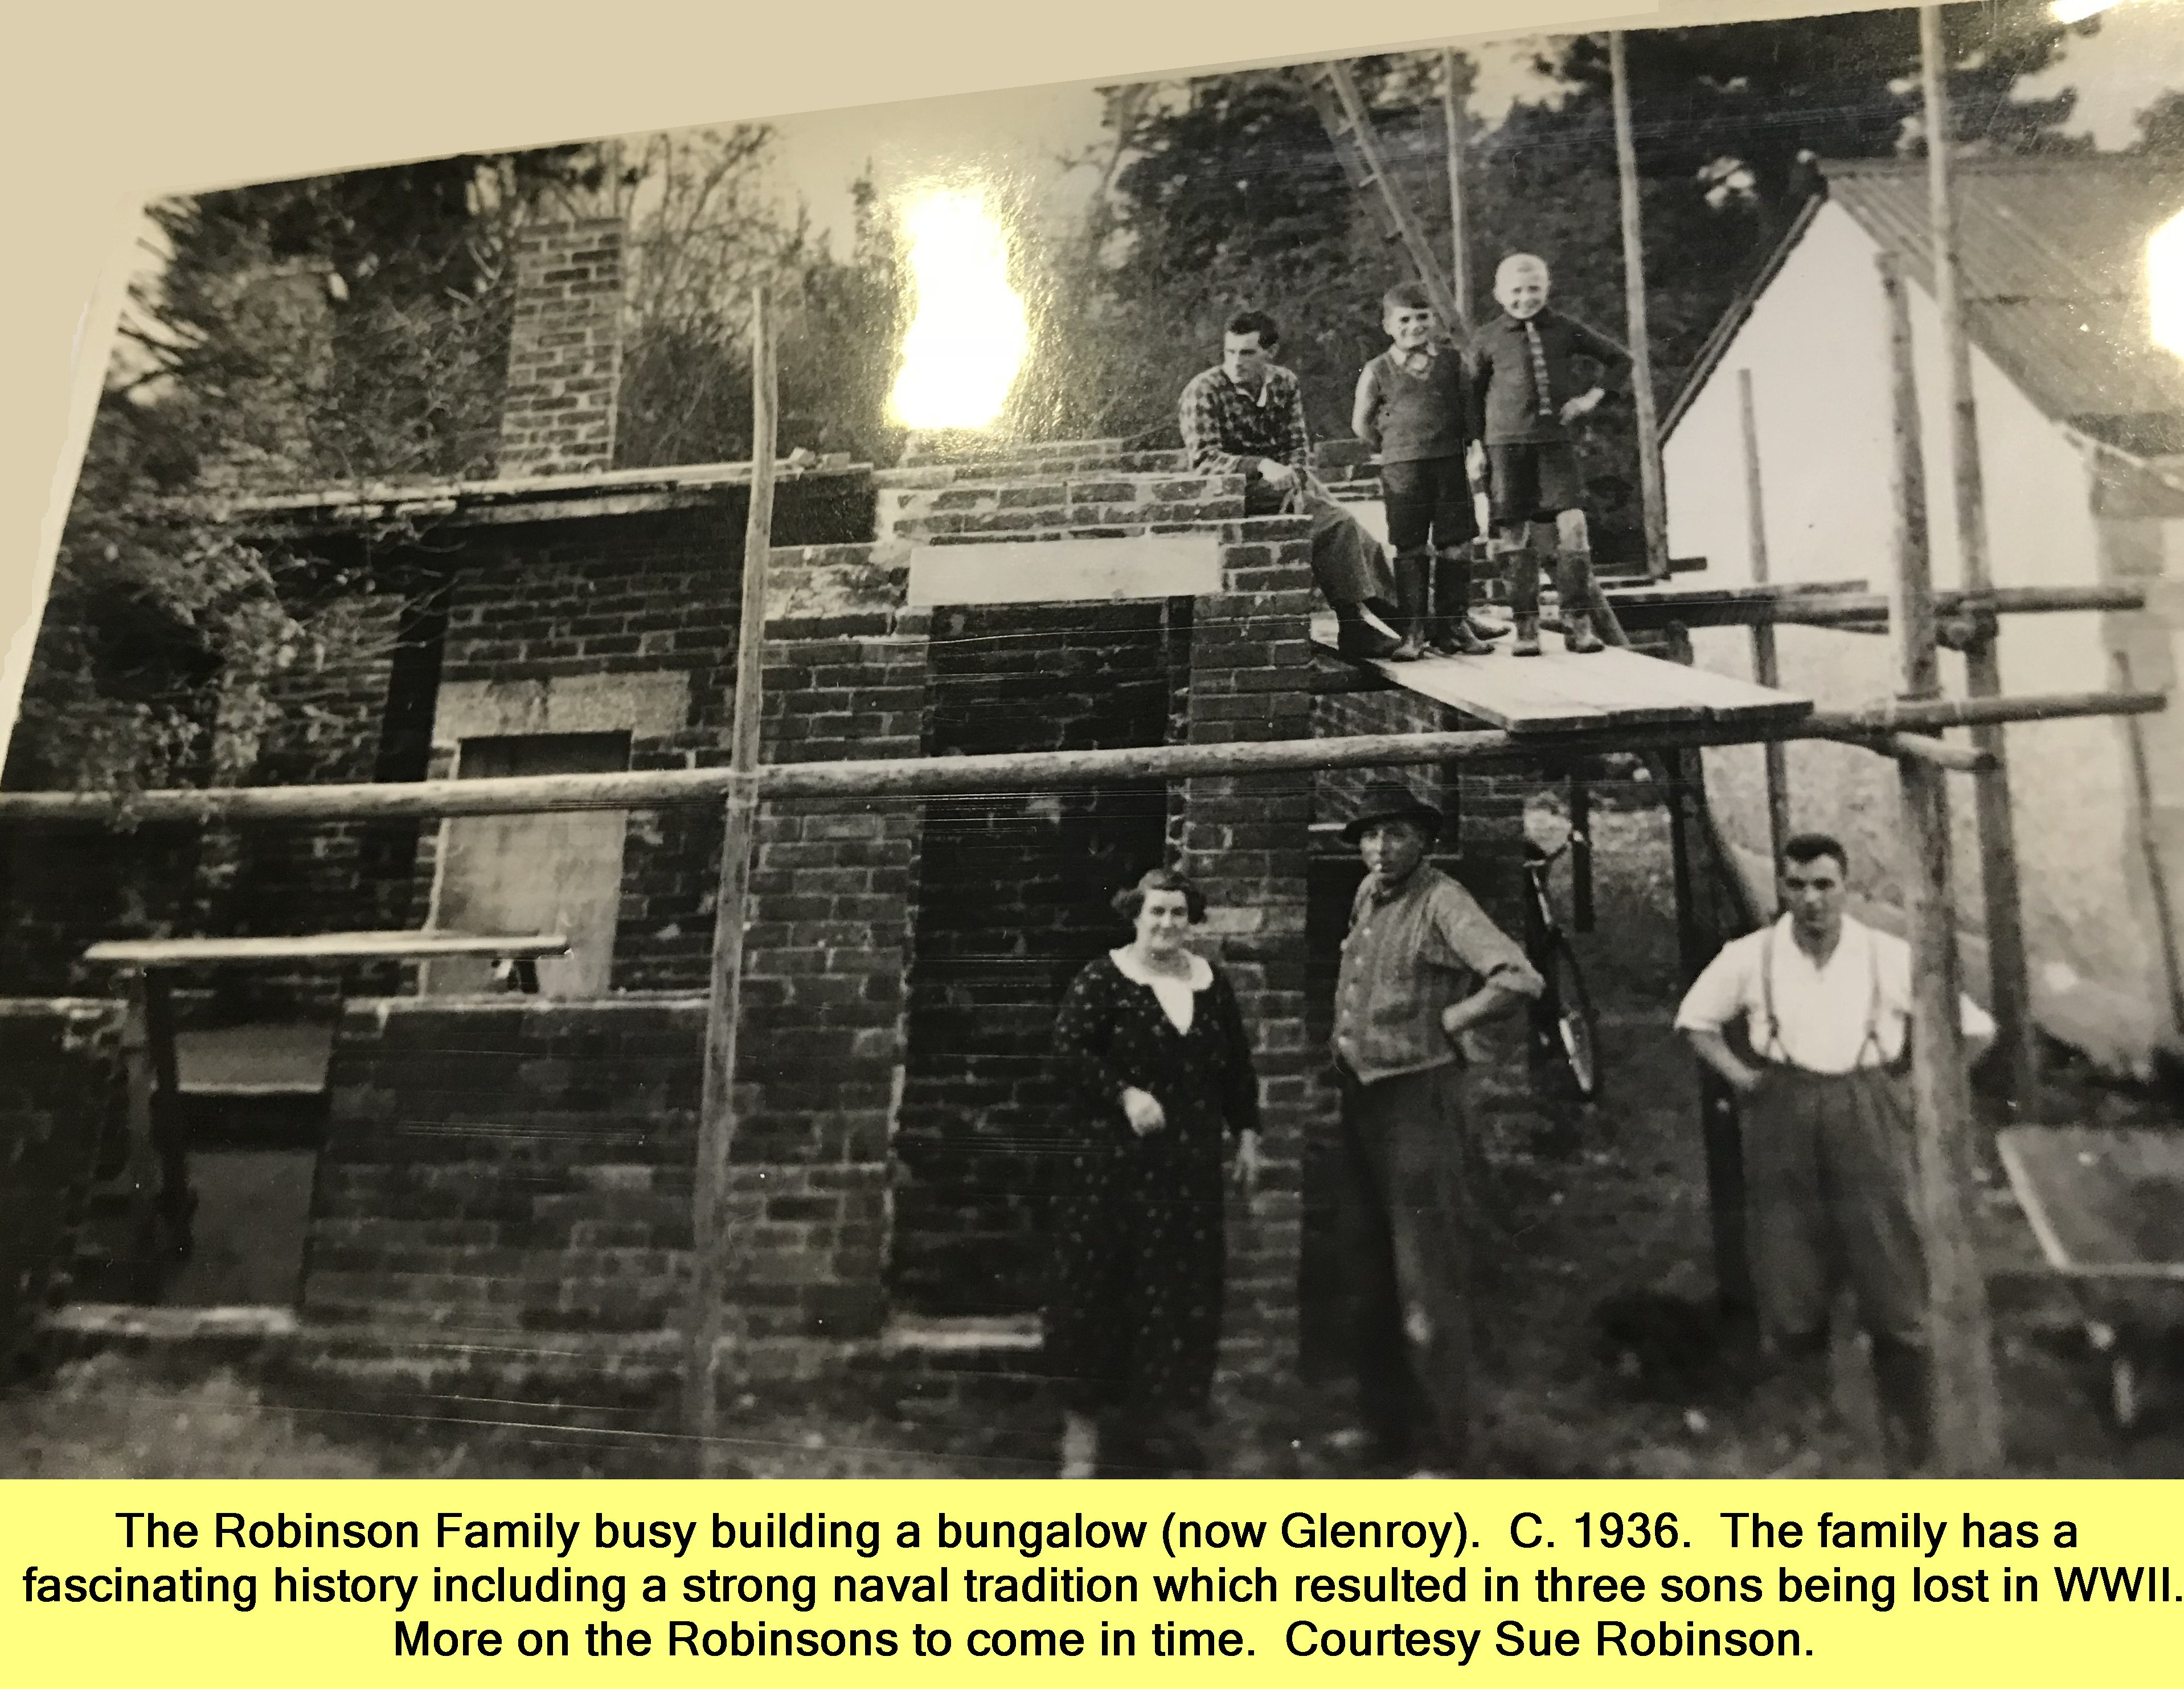 Robinson family building bungalow Glenroy